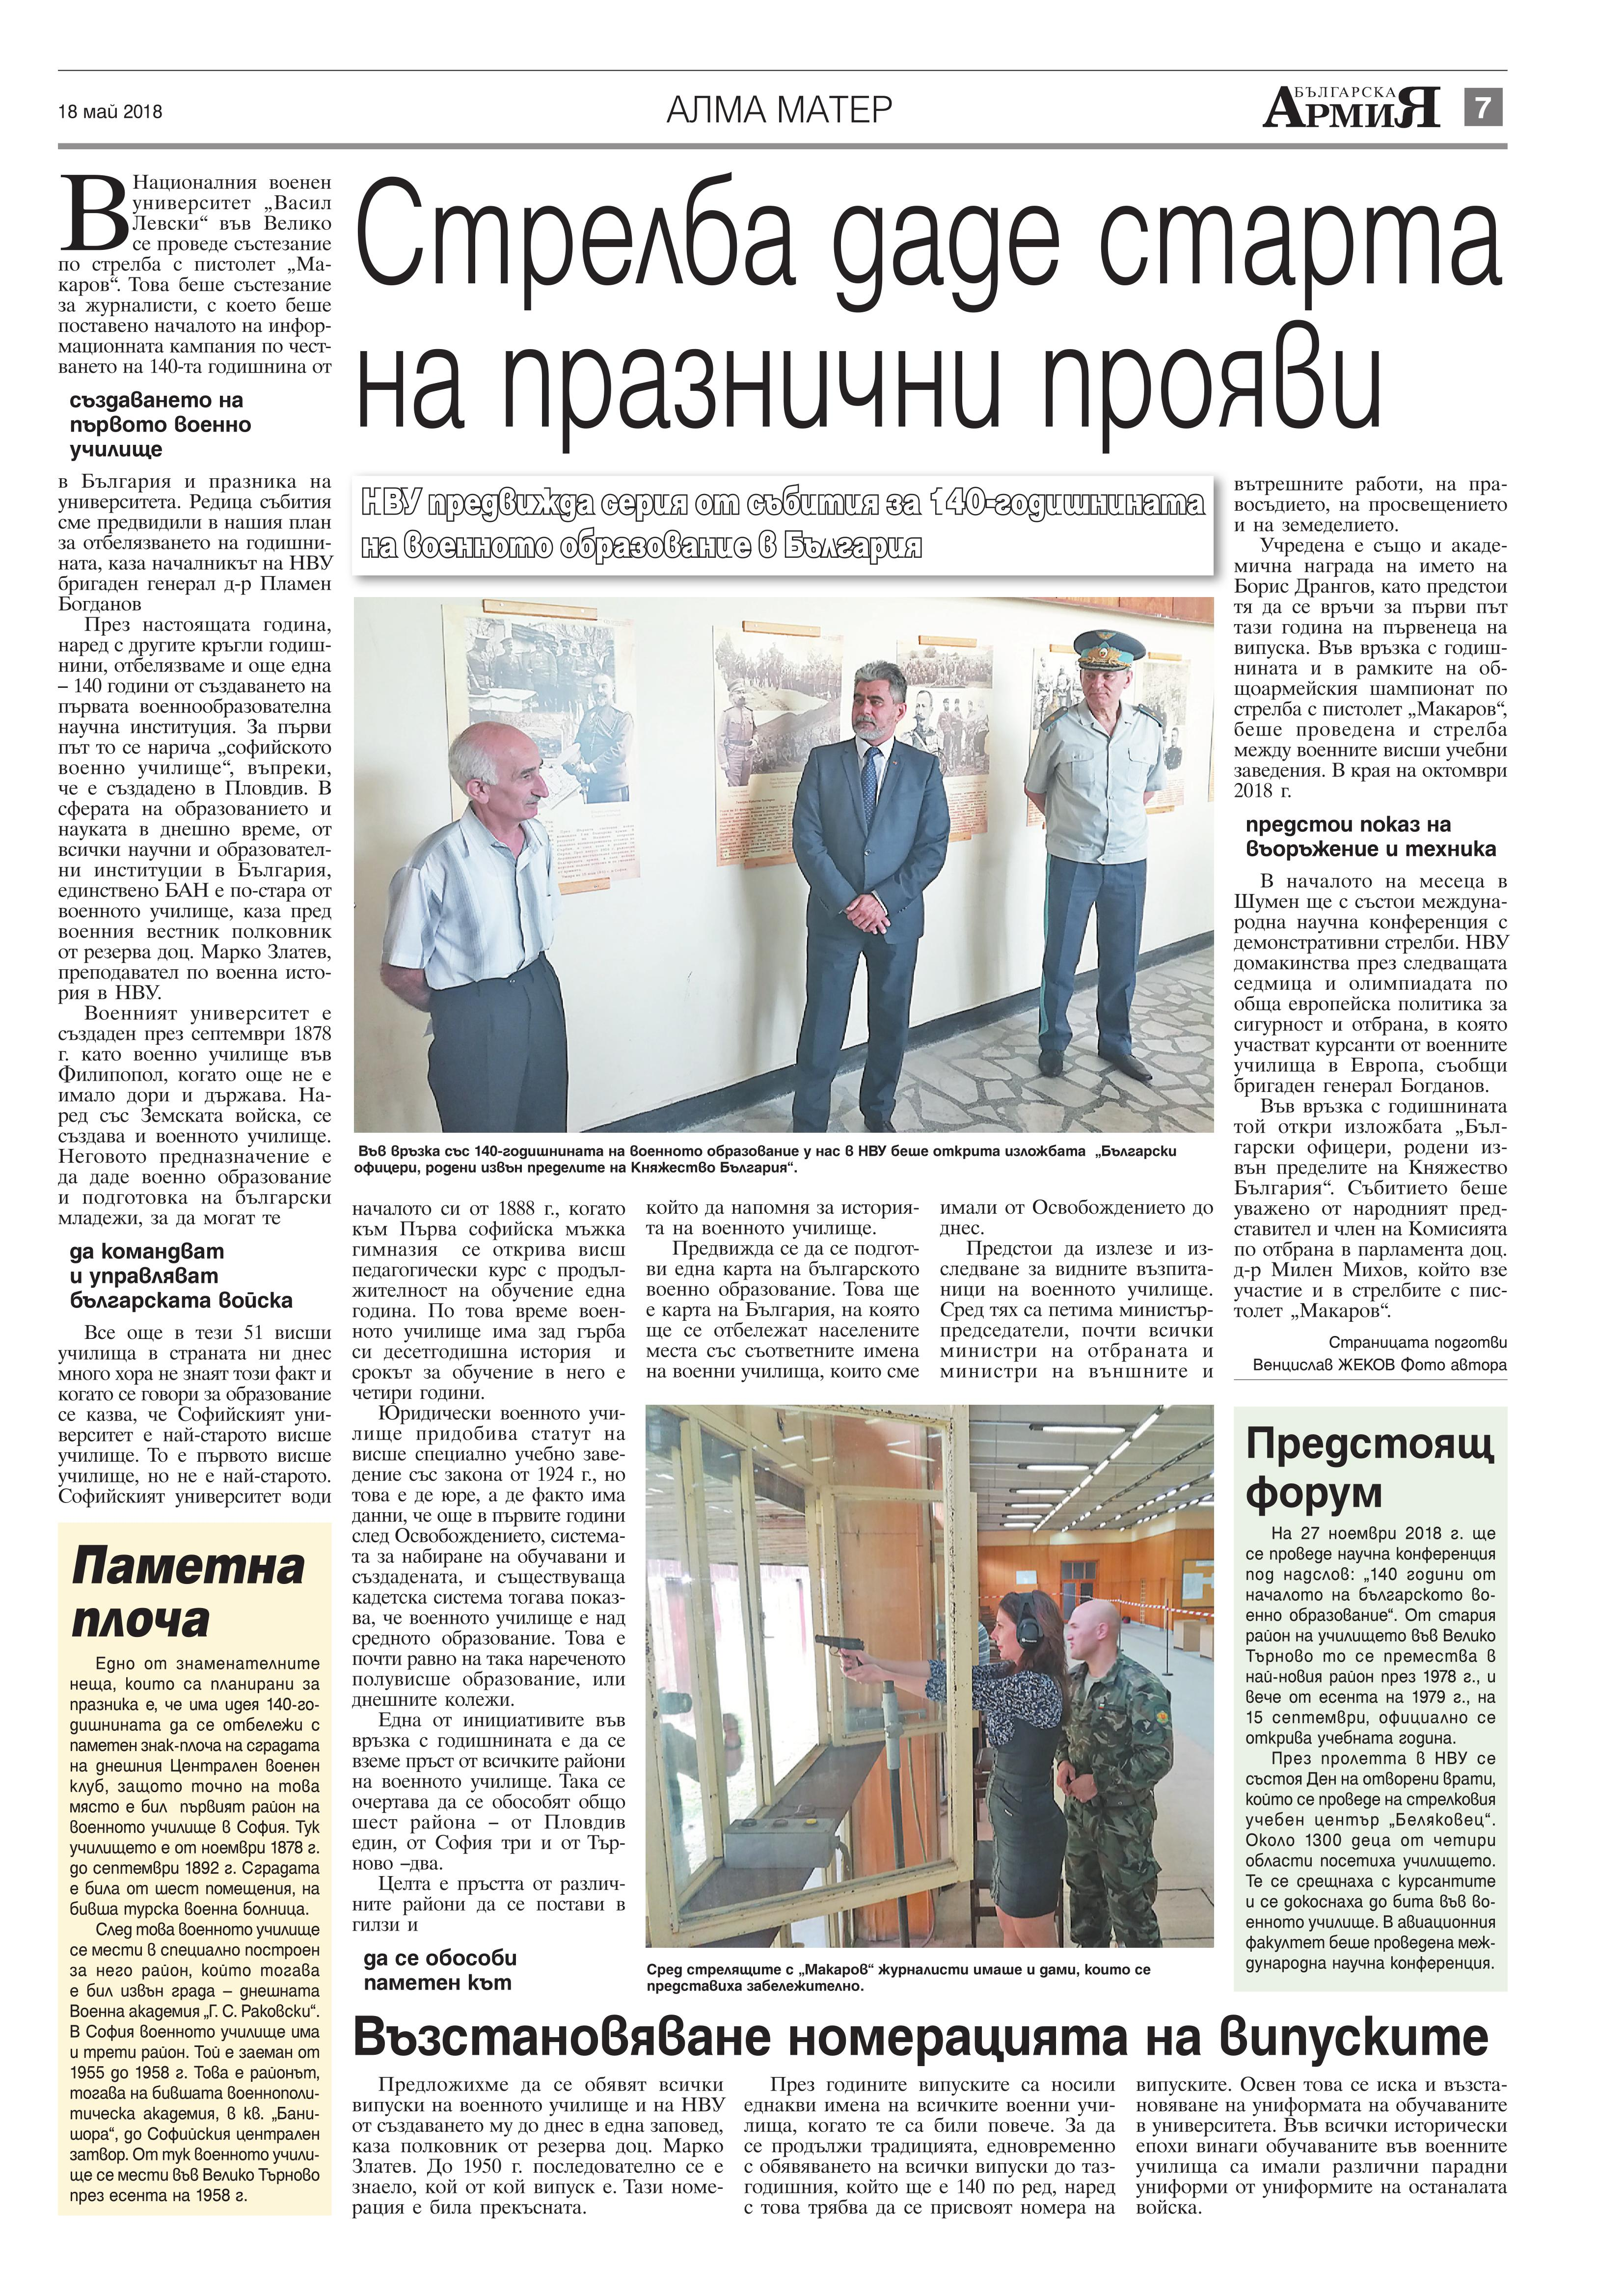 https://armymedia.bg/wp-content/uploads/2015/06/07.page1_-48.jpg